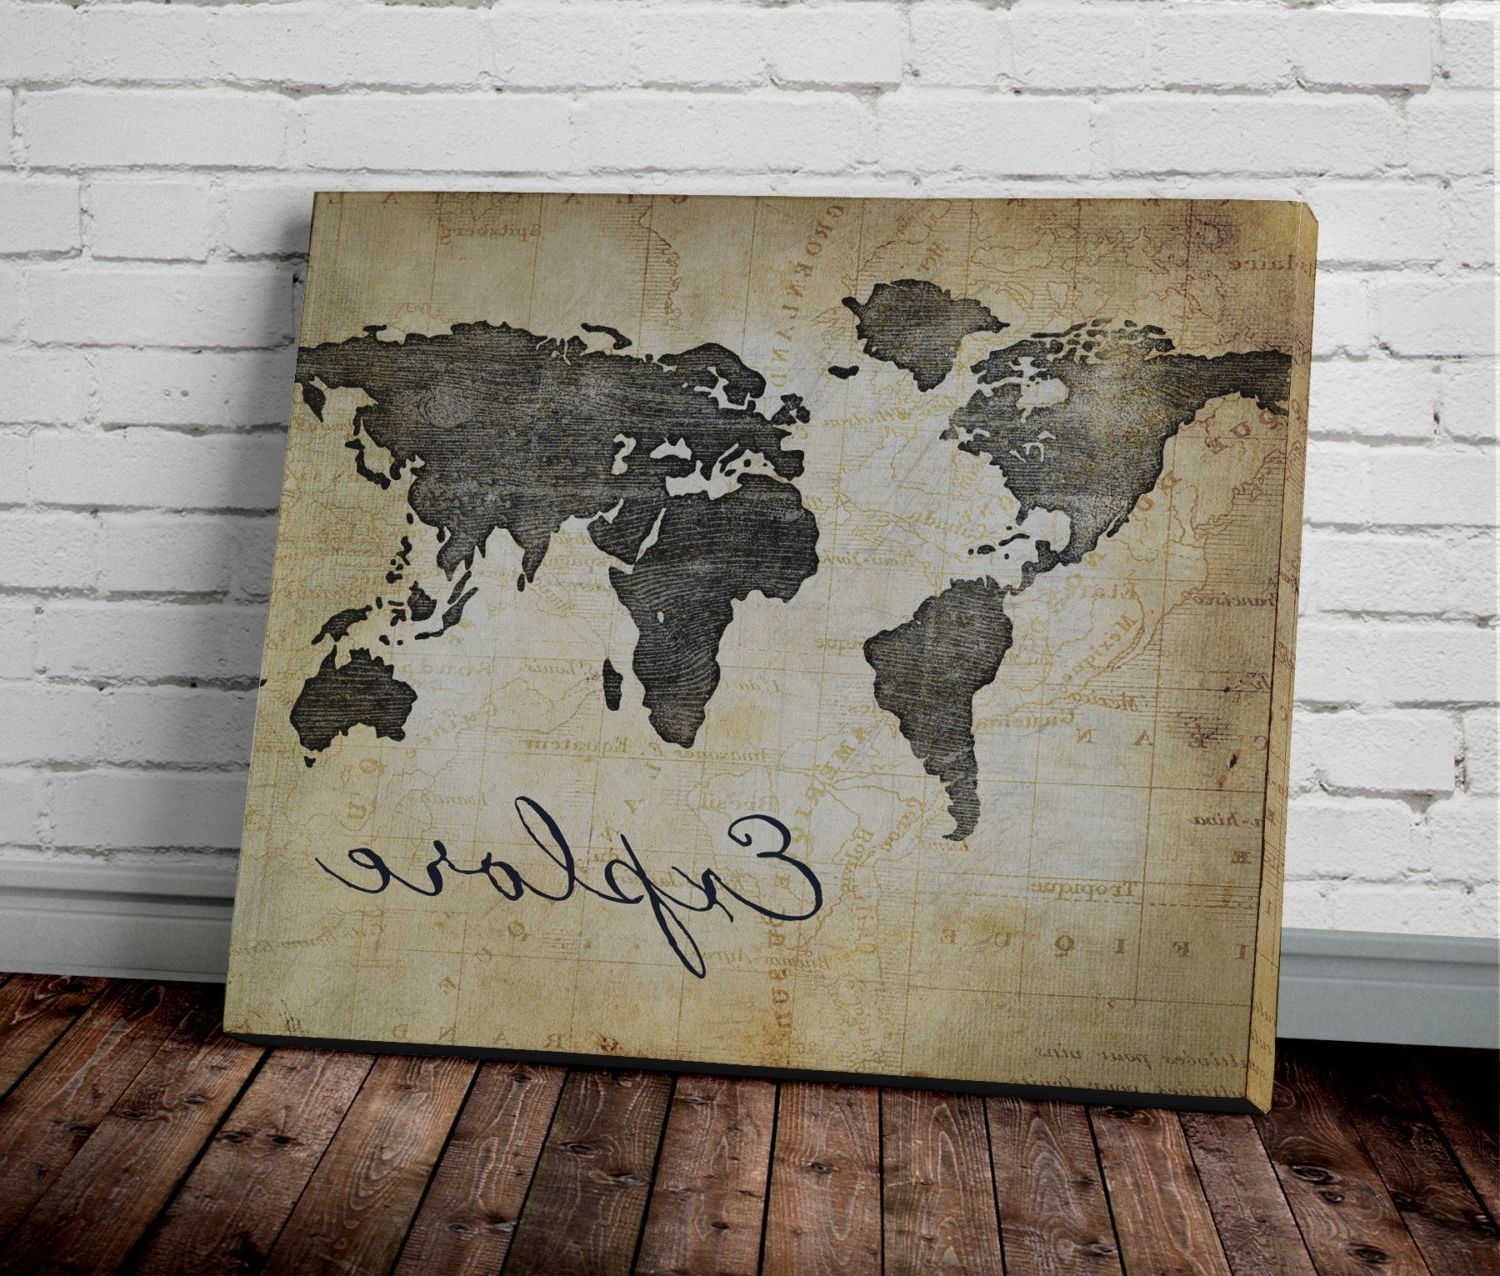 Preferred Explore World Map Wall Art Canvas World Map Print In Brown New With Regard To World Map Wall Art Canvas (View 9 of 15)